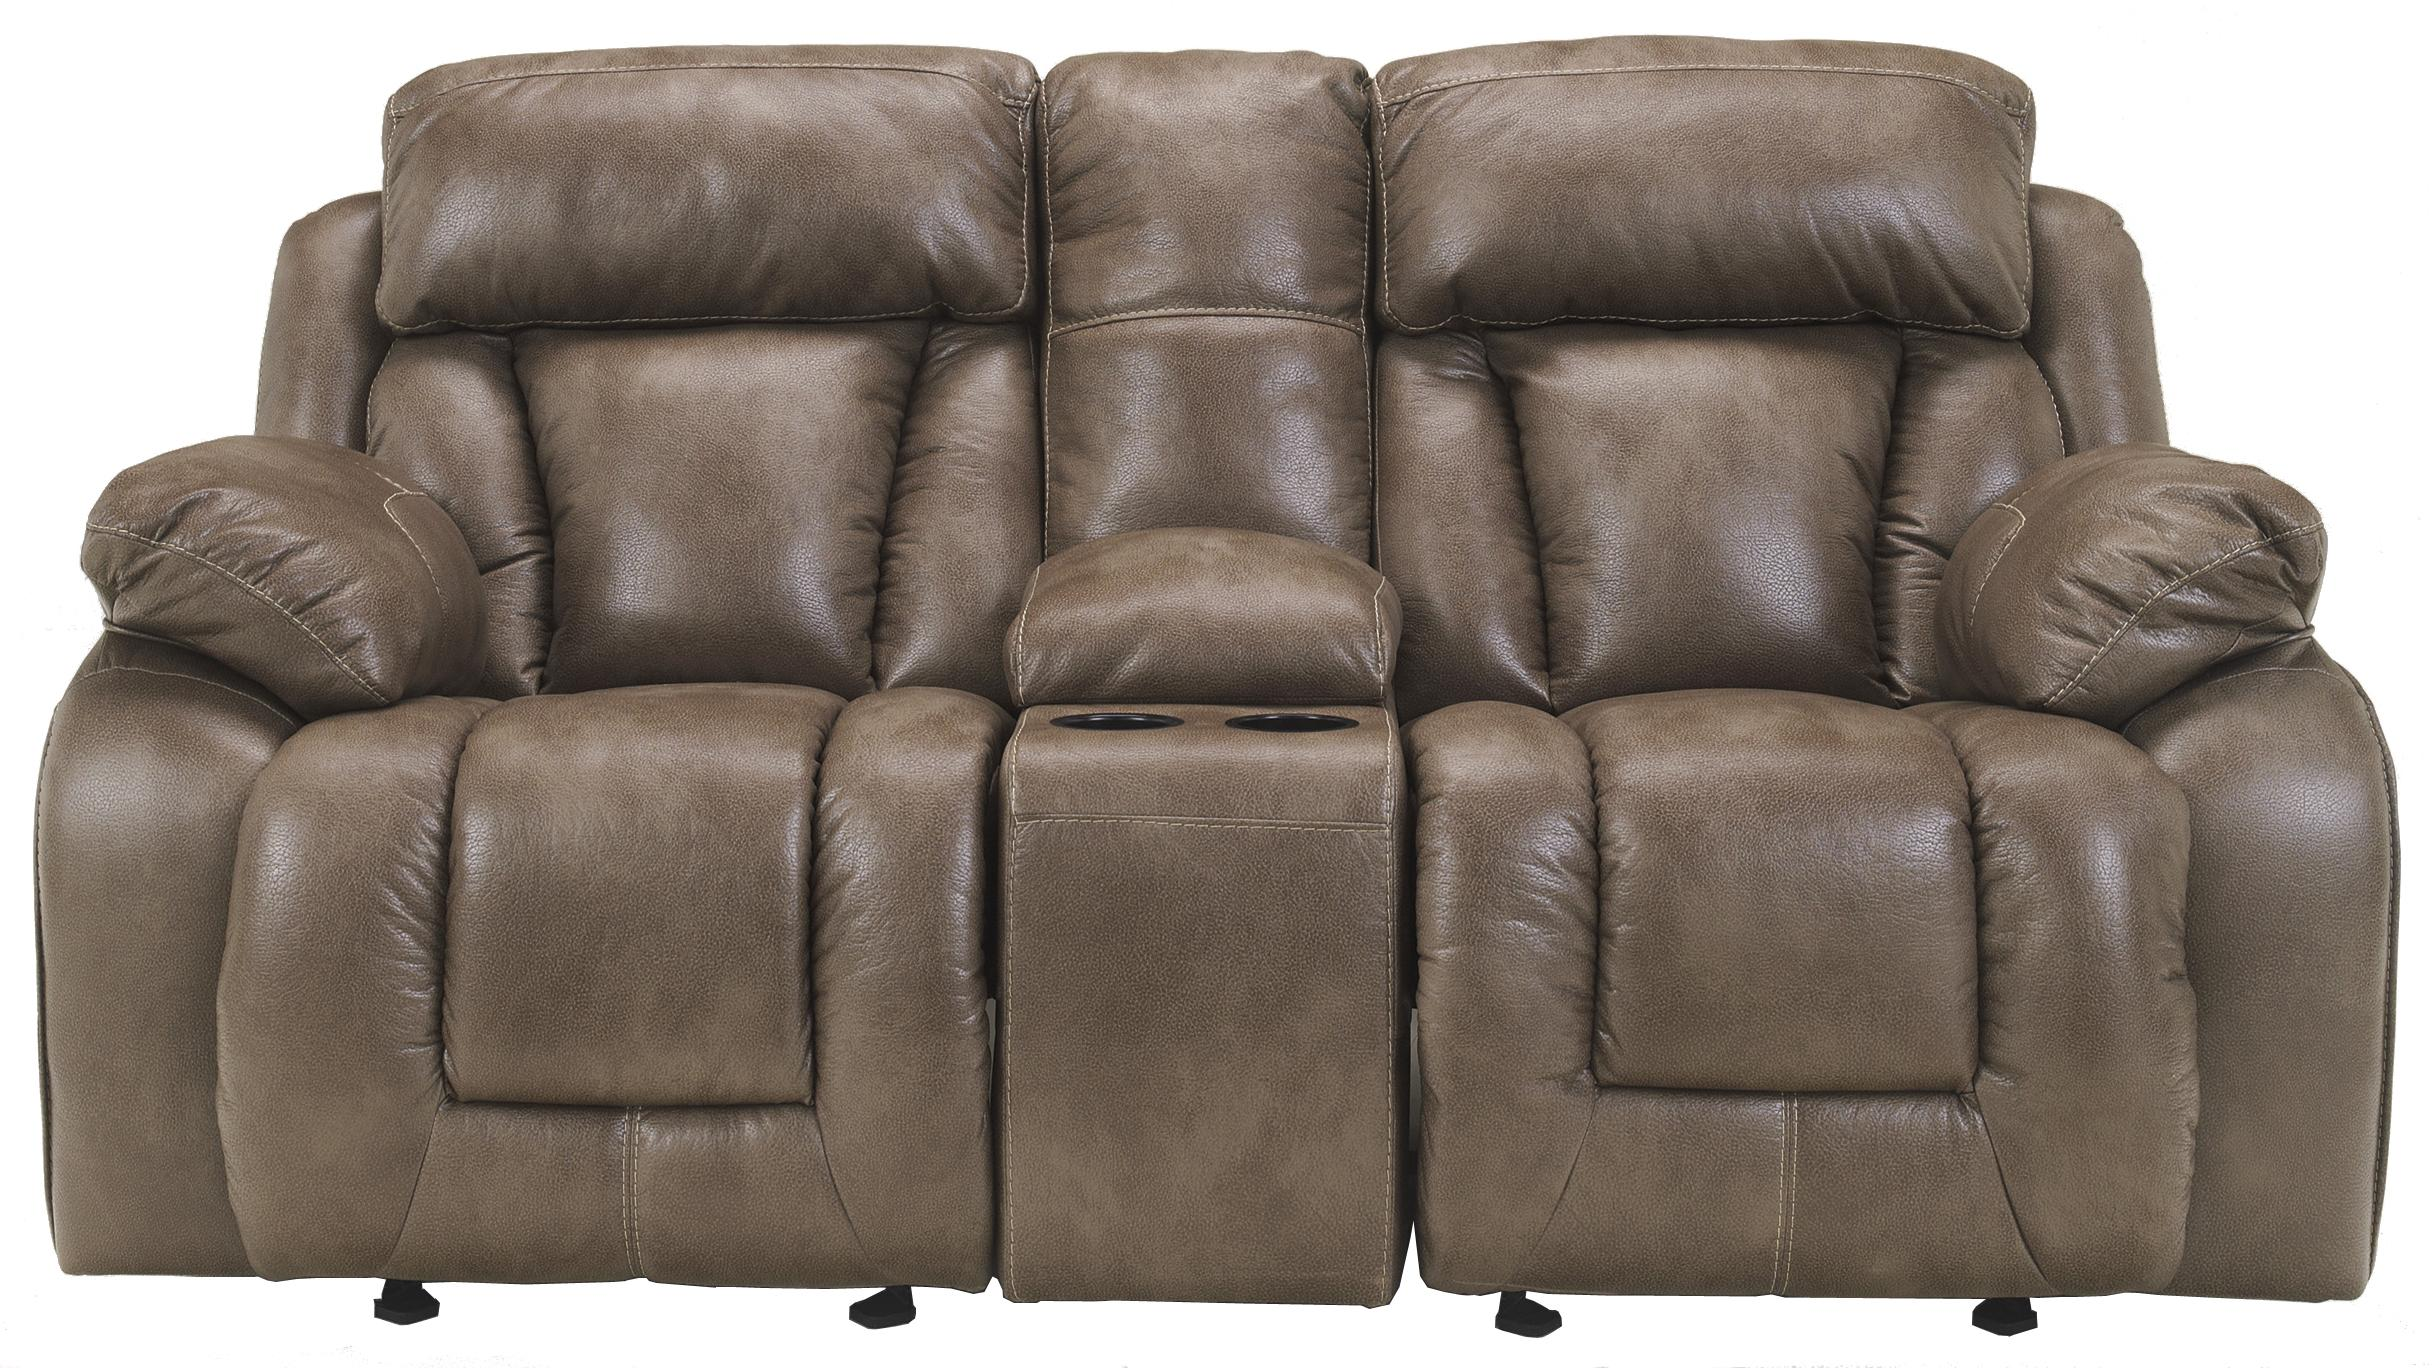 recliner loveseat reclining durablend sofa collection decoration home furniture ashley brolayne gallery power